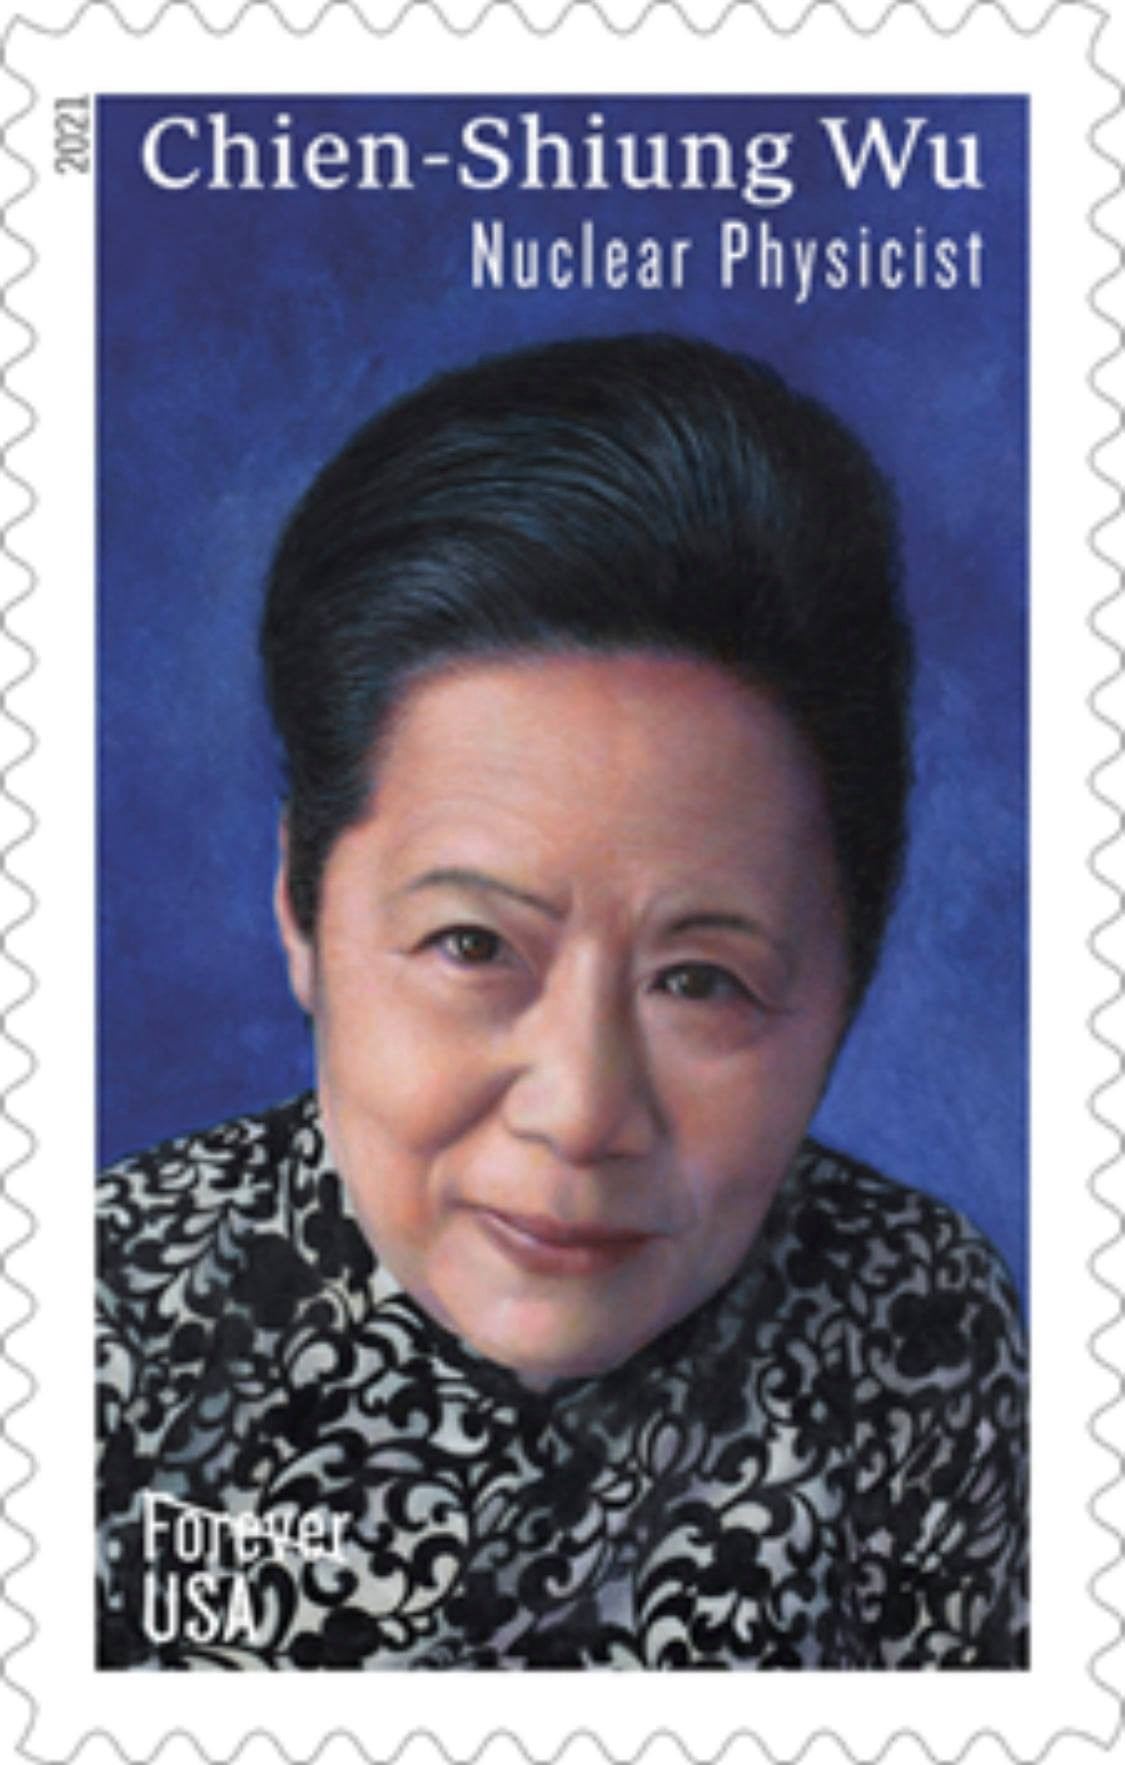 New USPS Stamp Celebrates Physicist Chien-Shiung Wu, The 'First Lady' Of Physics